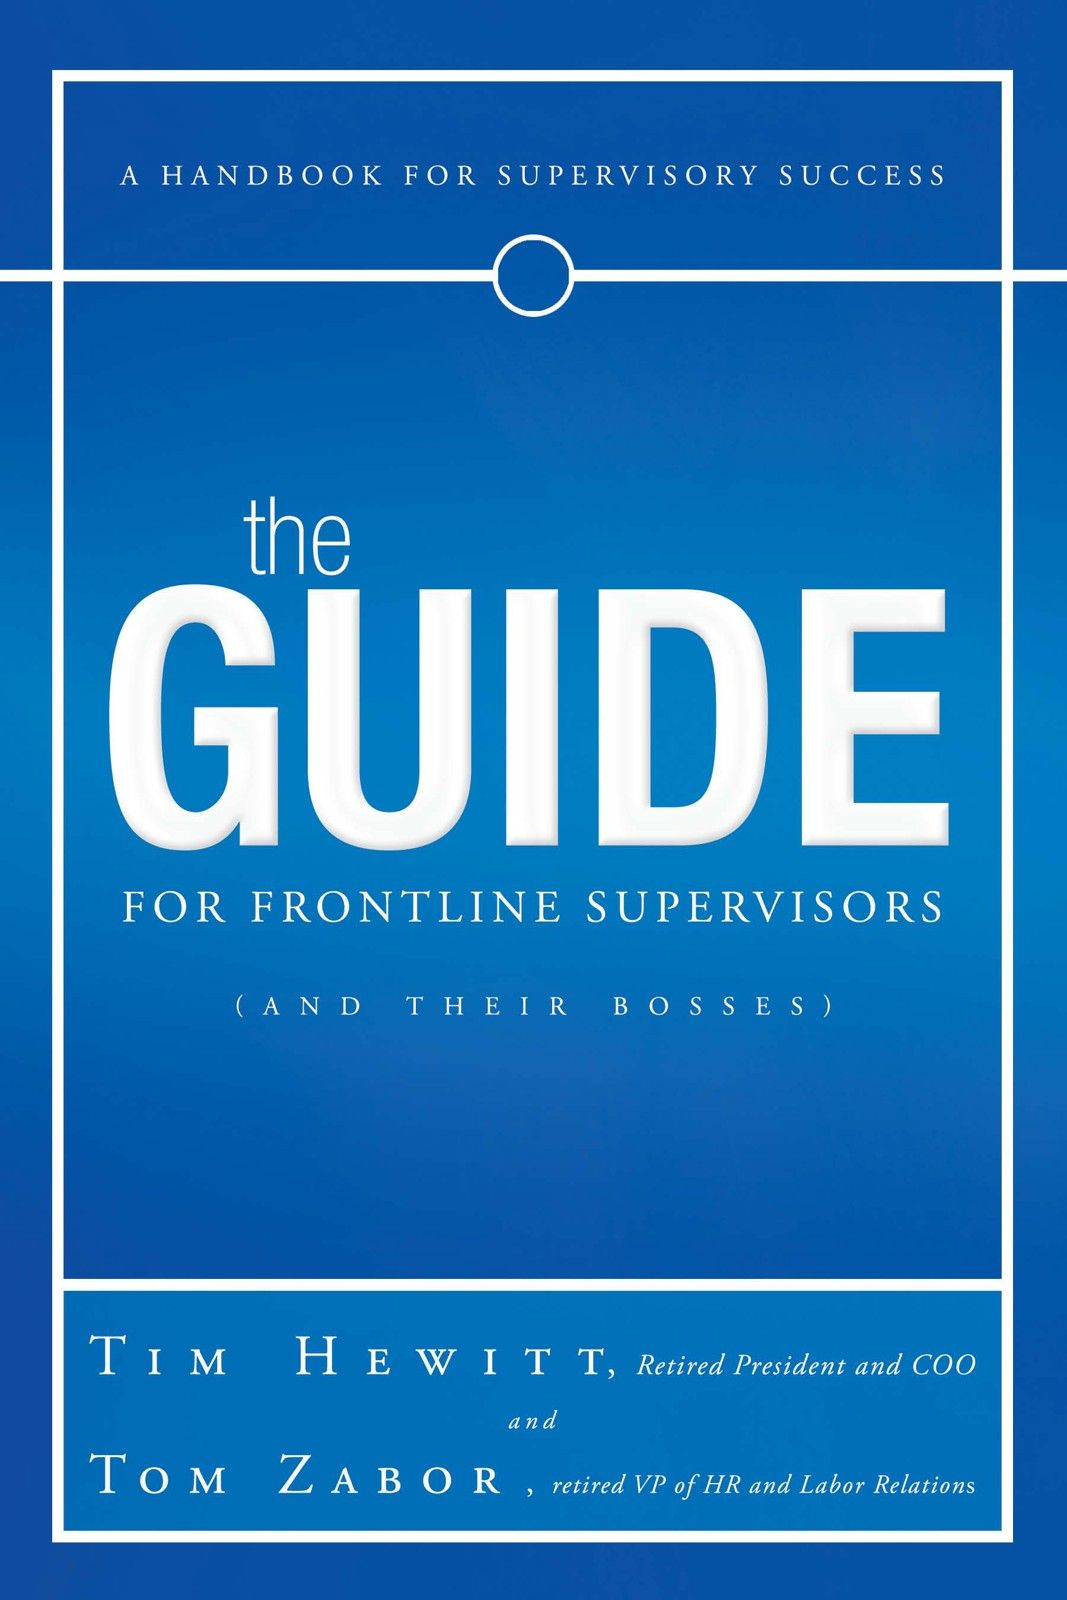 The Guide for Frontline Supervisors (and Their Bosses) By: Tim Hewitt & Tom Zabor